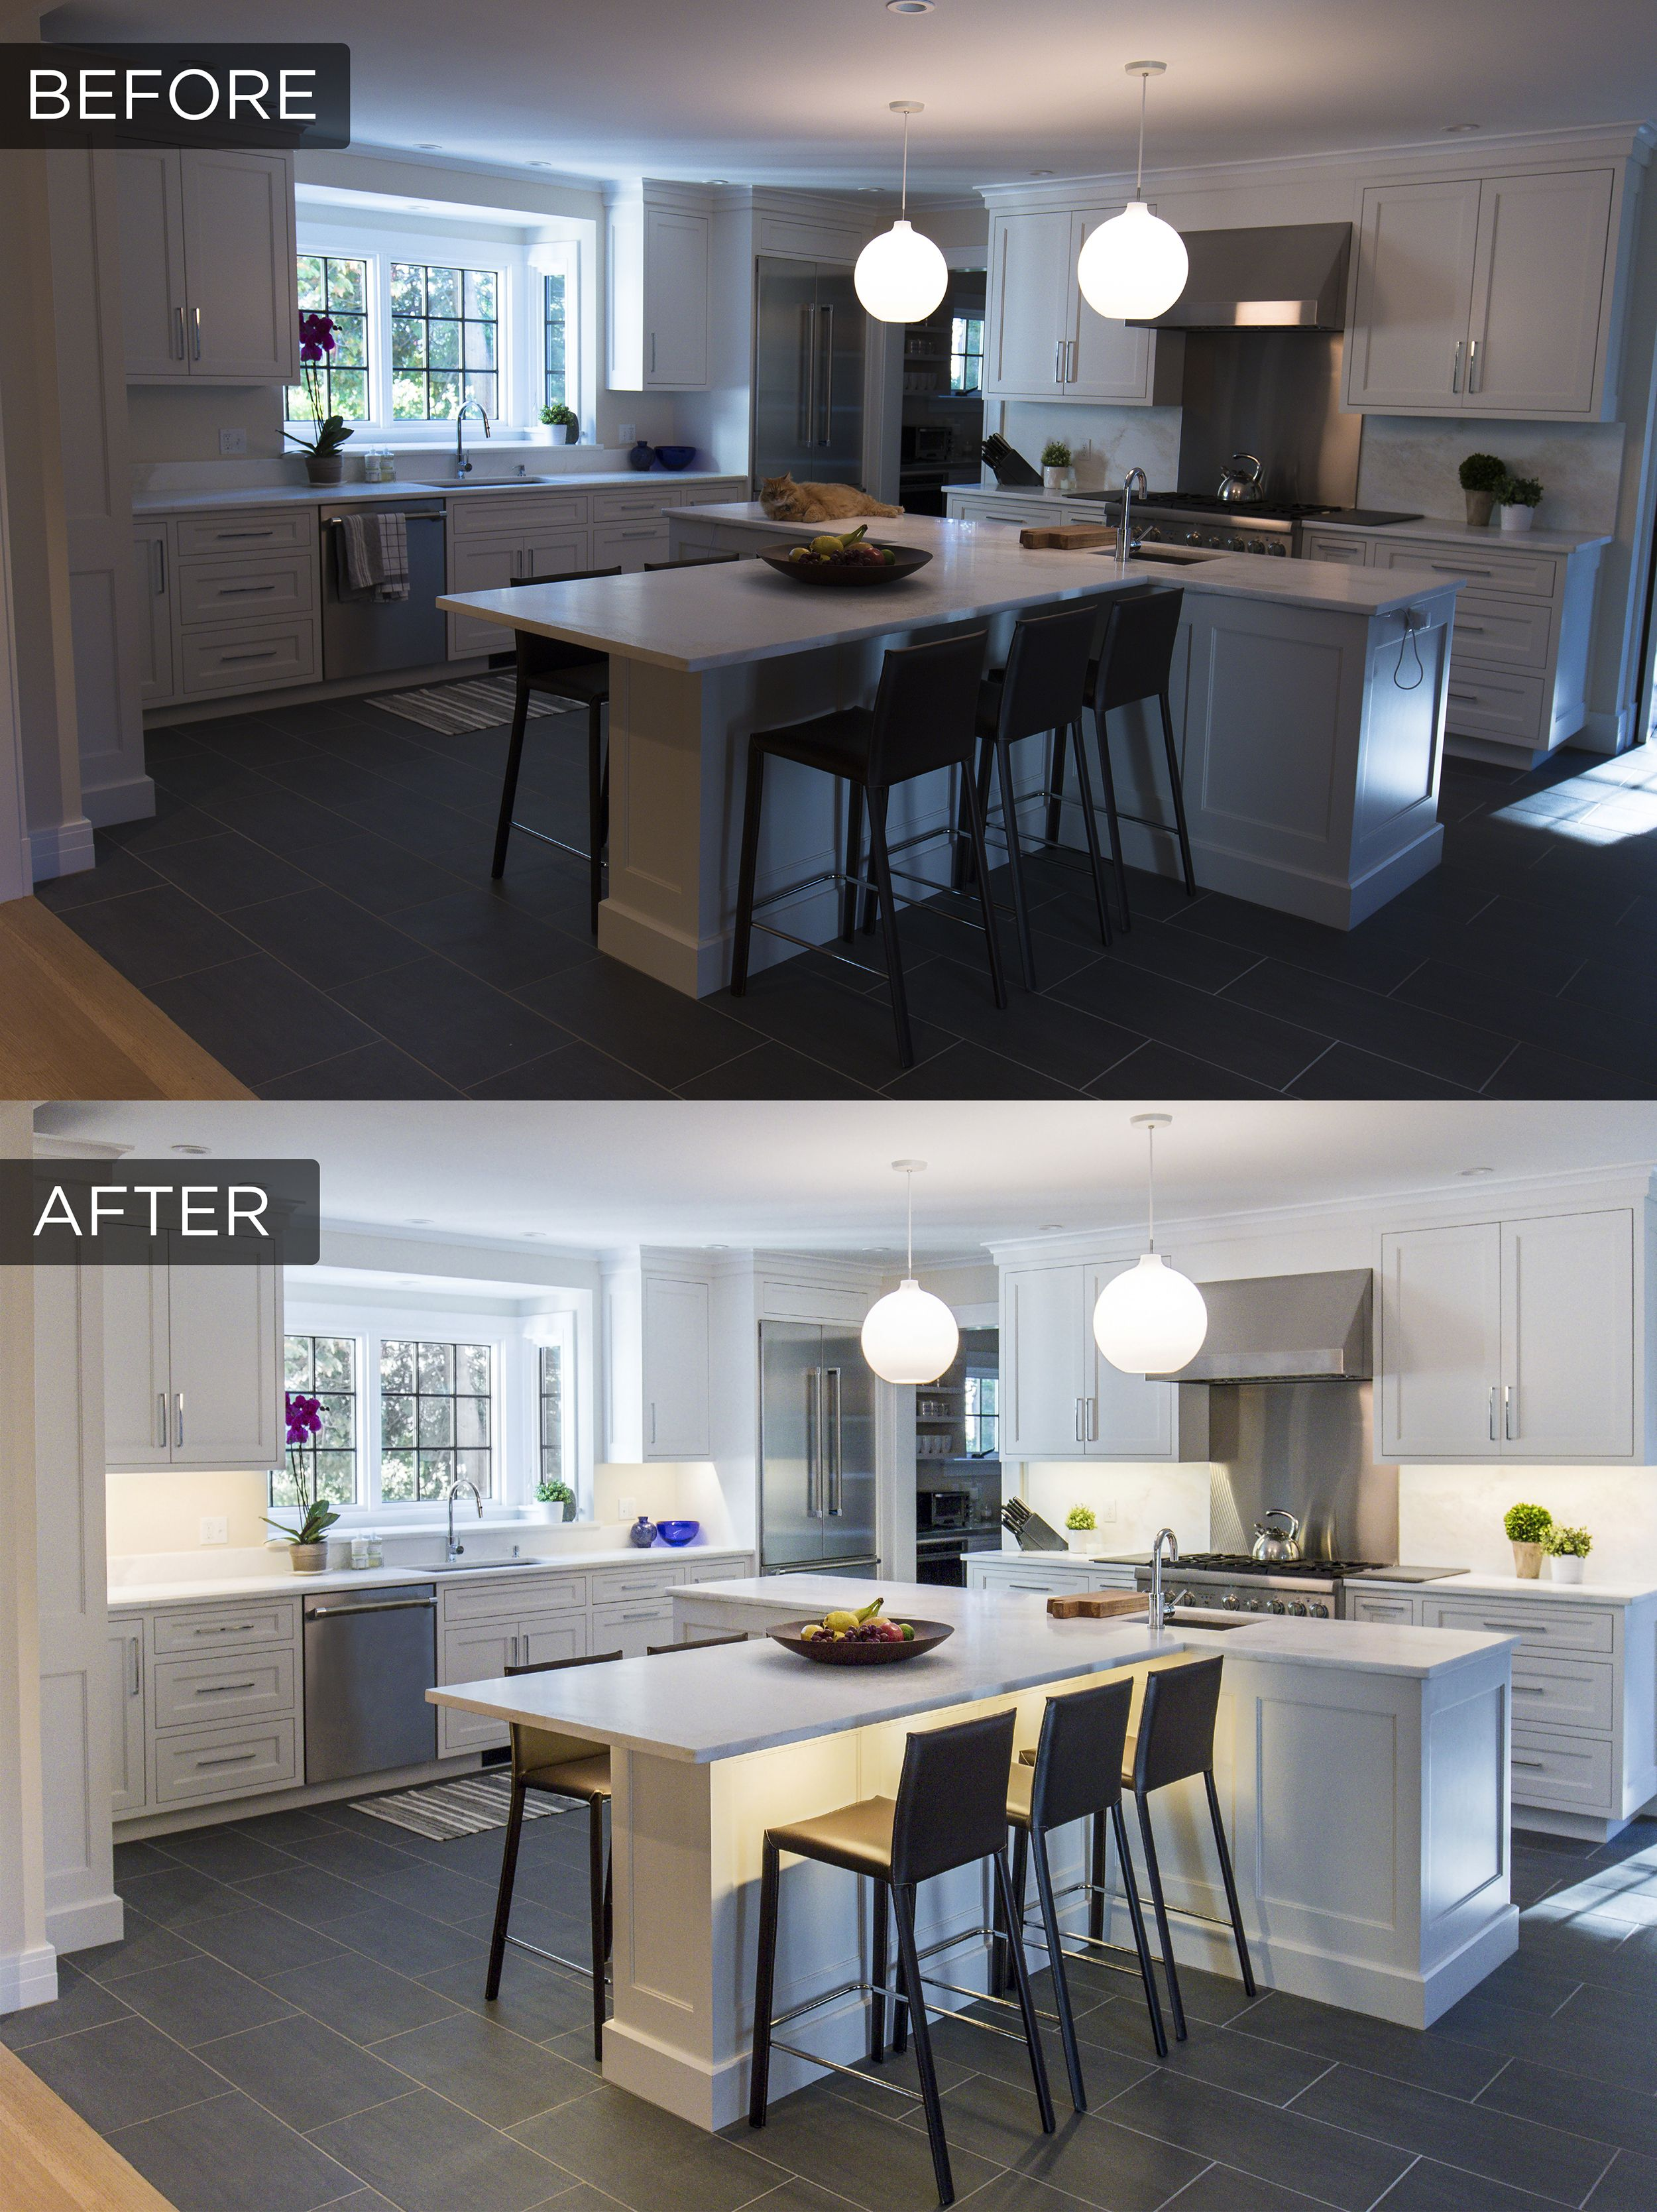 Before After Under Cabinet Lighting In A Recently Remodeled